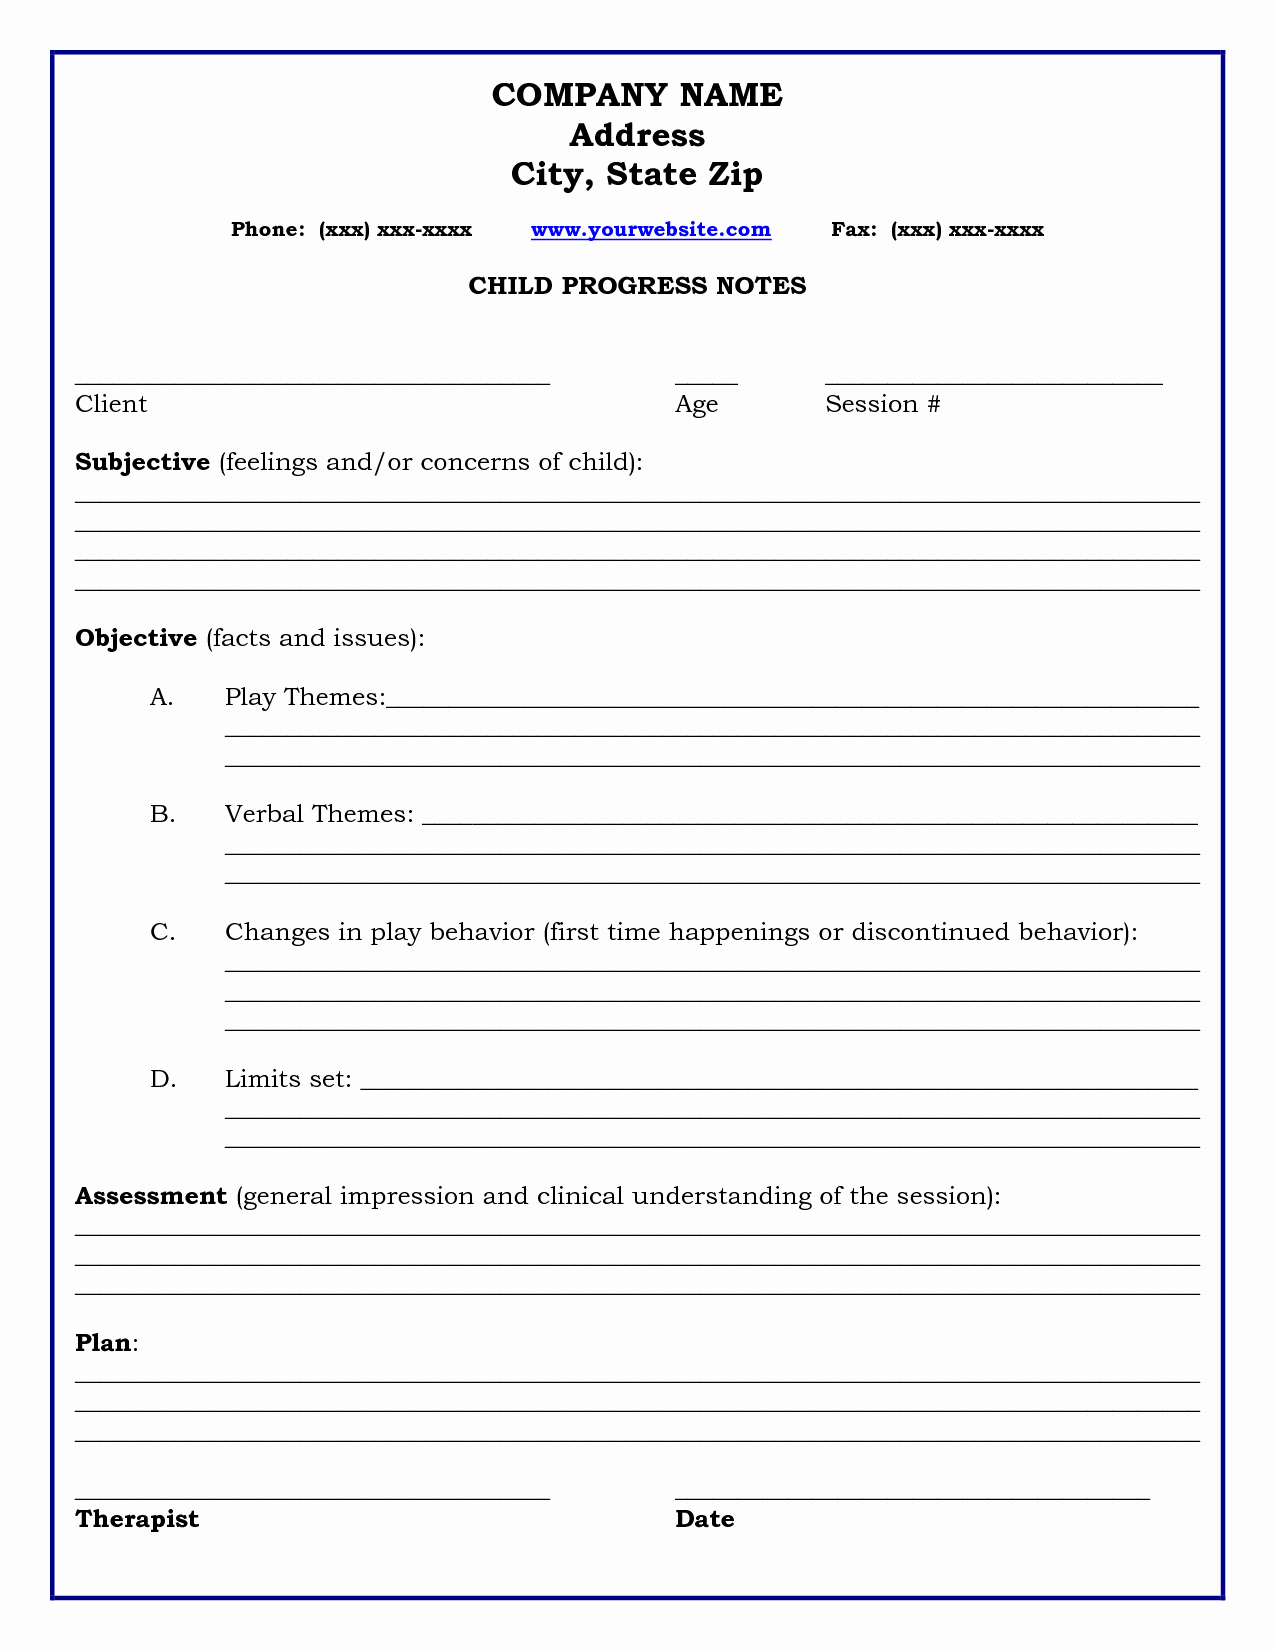 Psychotherapy Progress Notes Template Luxury therapy Progress Note Template